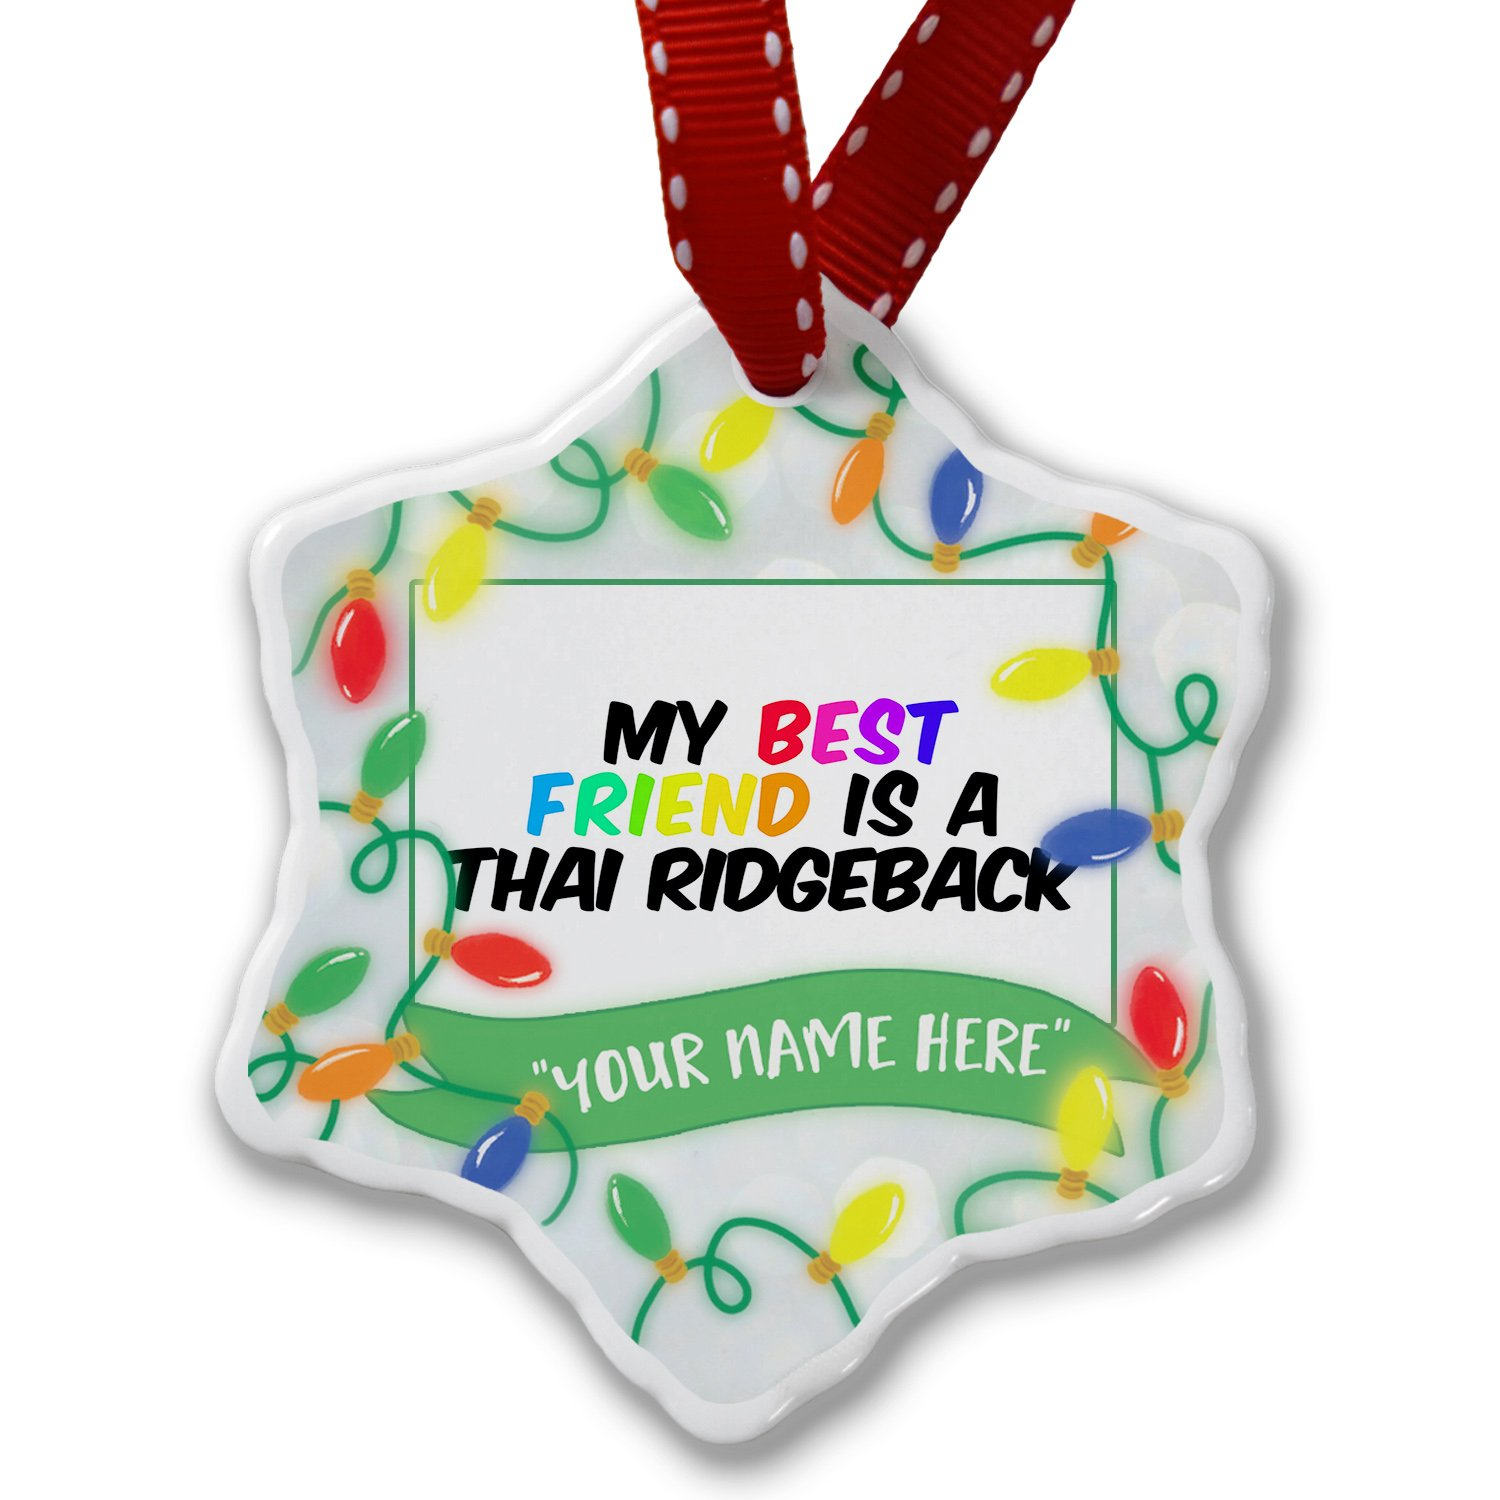 Personalized Name Christmas Ornament, My best Friend a Thai Ridgeback Dog from Thailand NEONBLOND by NEONBLOND